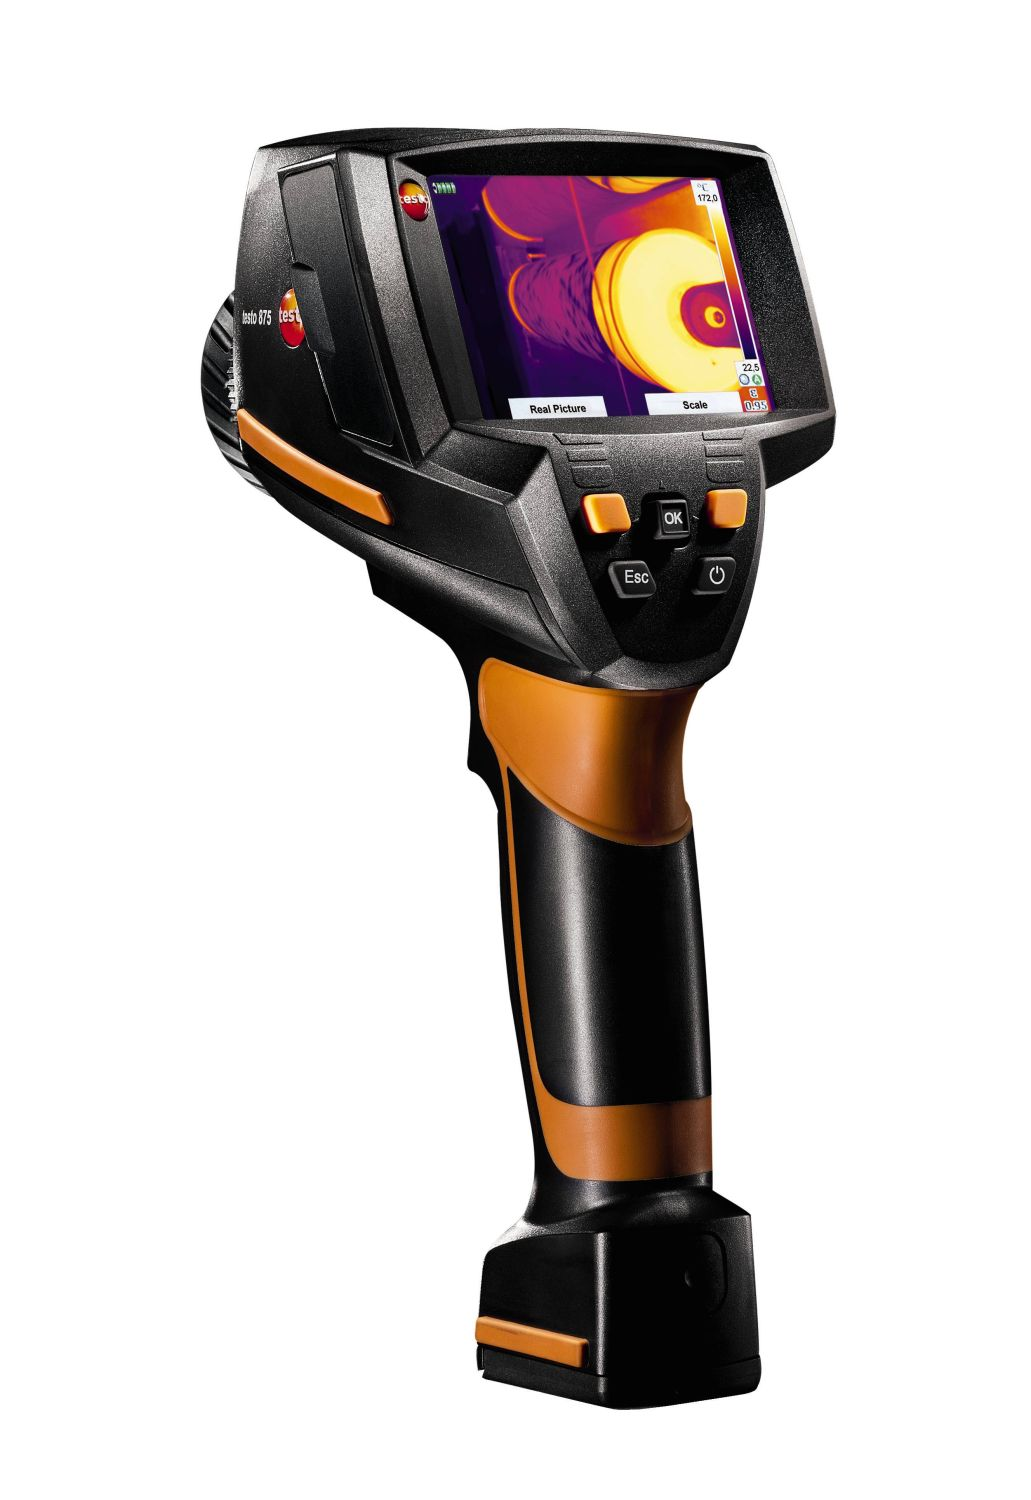 testo-875-instrument-thermography-004830.jpg